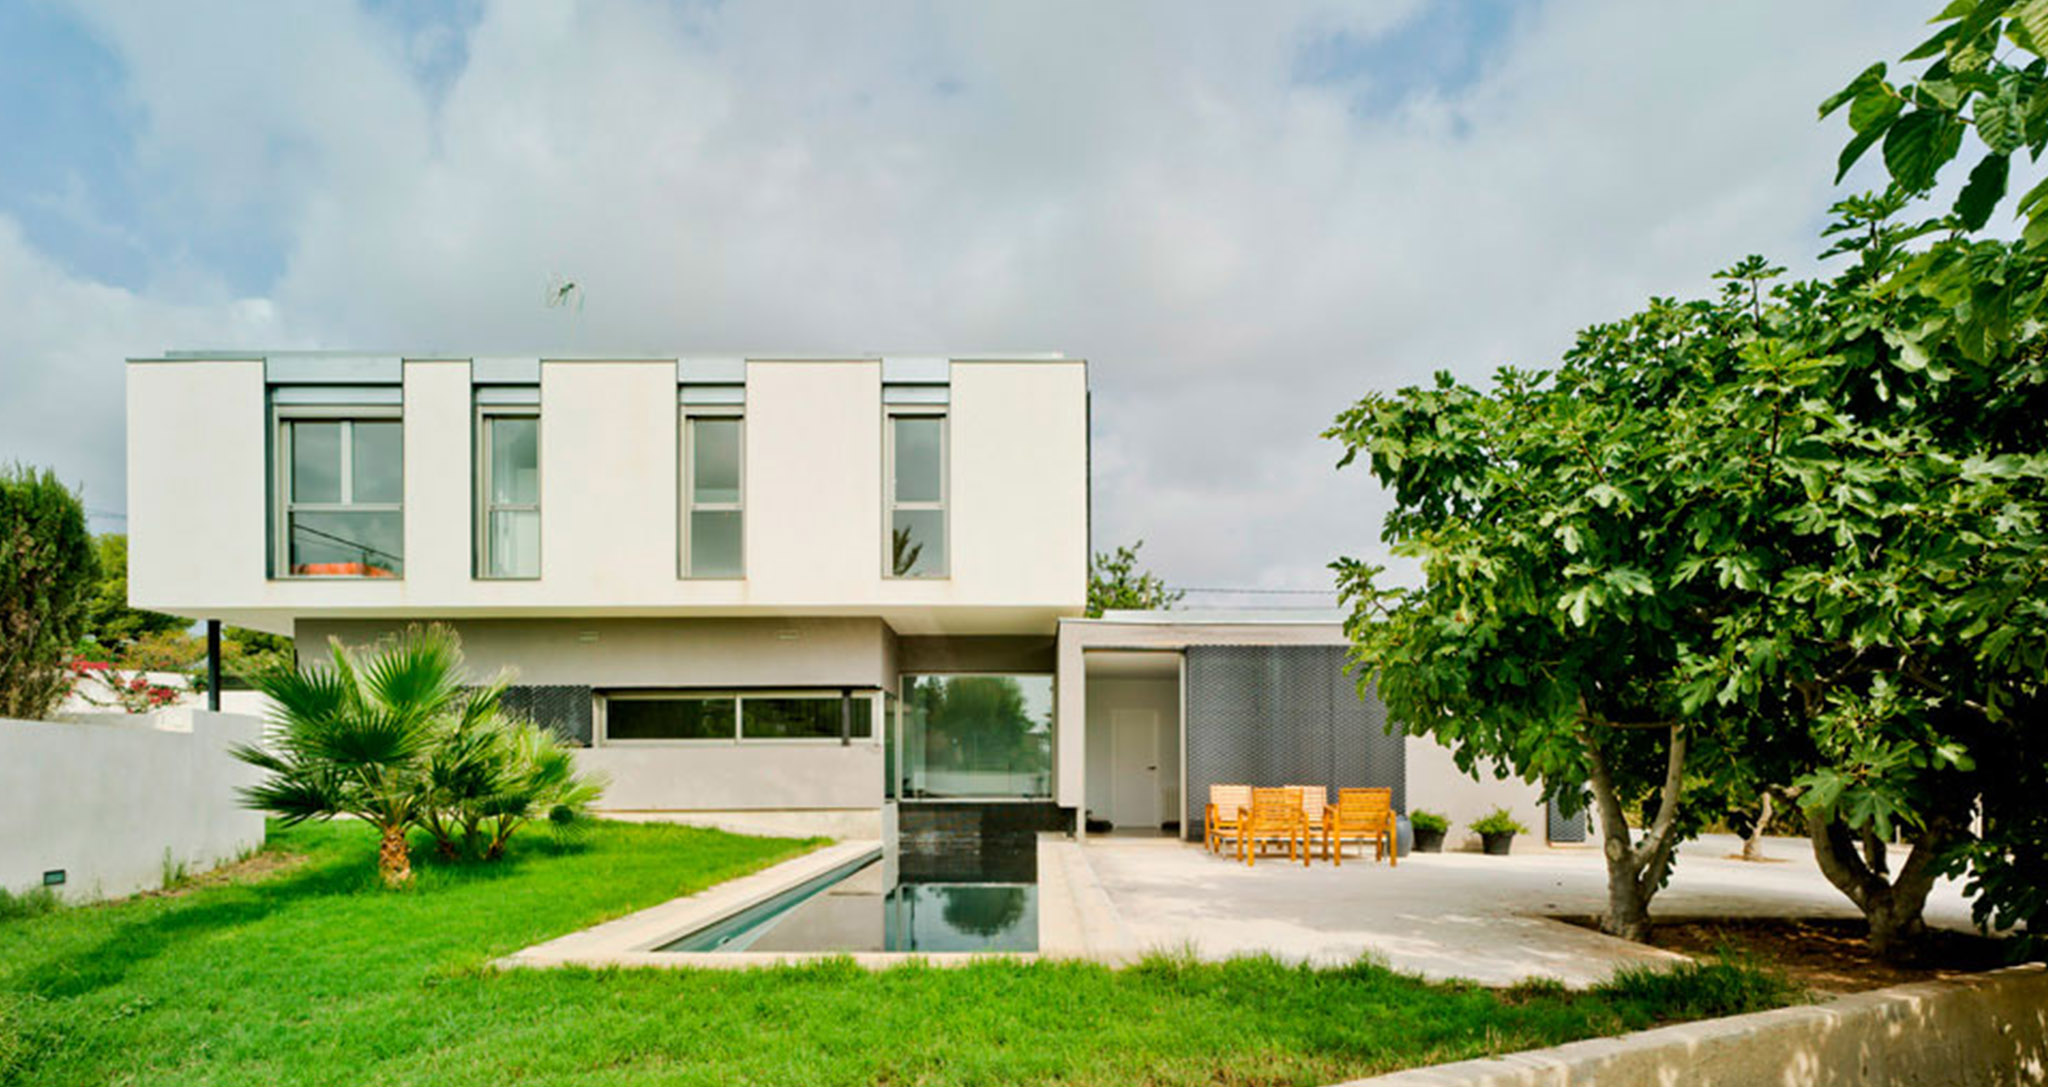 DESIGN AND ARCHITECTURE FOR SINGLE-FAMILY HOME A+M HOUSE BY ROCAMORA IN ELCHE ALICANTE SPAIN